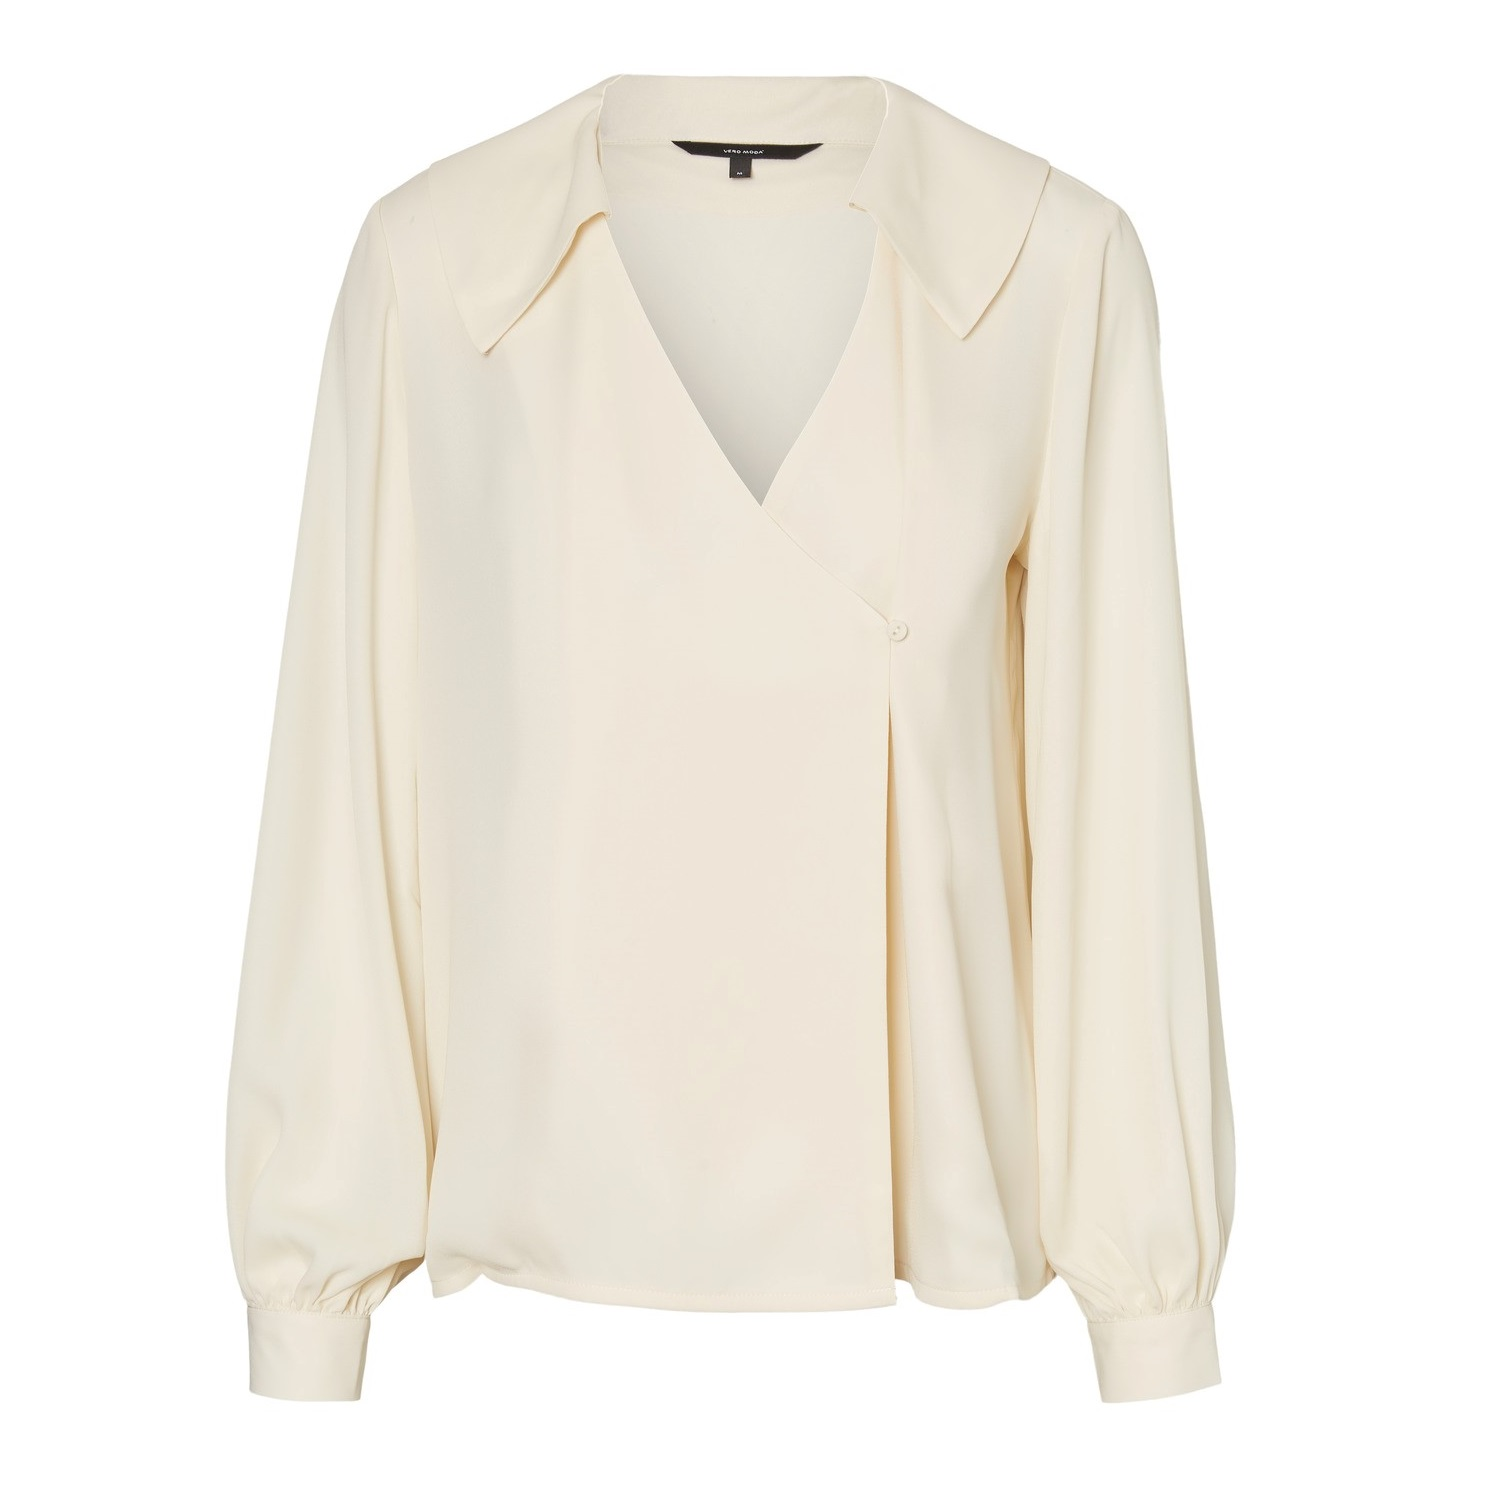 SALE  Mila birch blouse was £34